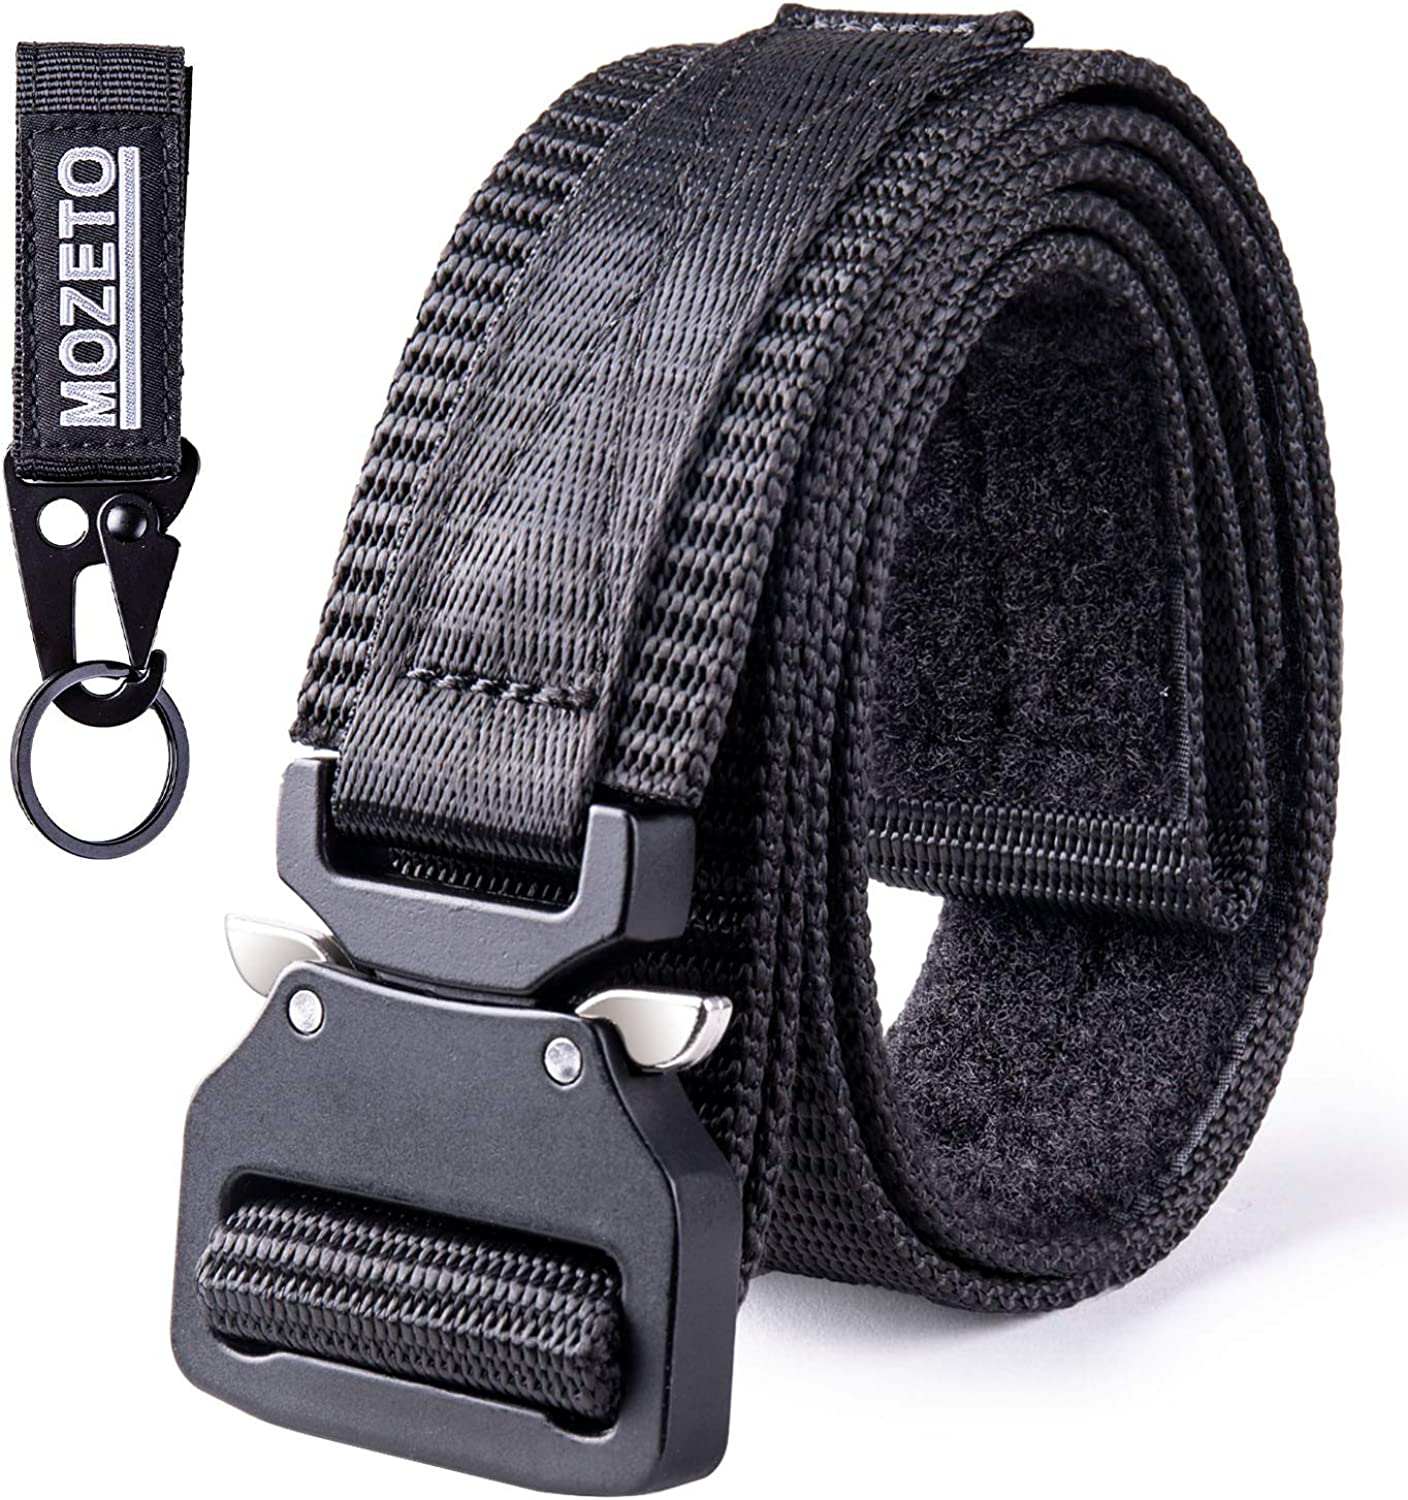 "MOZETO Tactical Belt Velco, 1.5"" Military Style EDC Gun Belts for Men Concealed Carry, Nylon Rigger Web Men's Belt with Heavy-Duty Quick-Release Buckle"